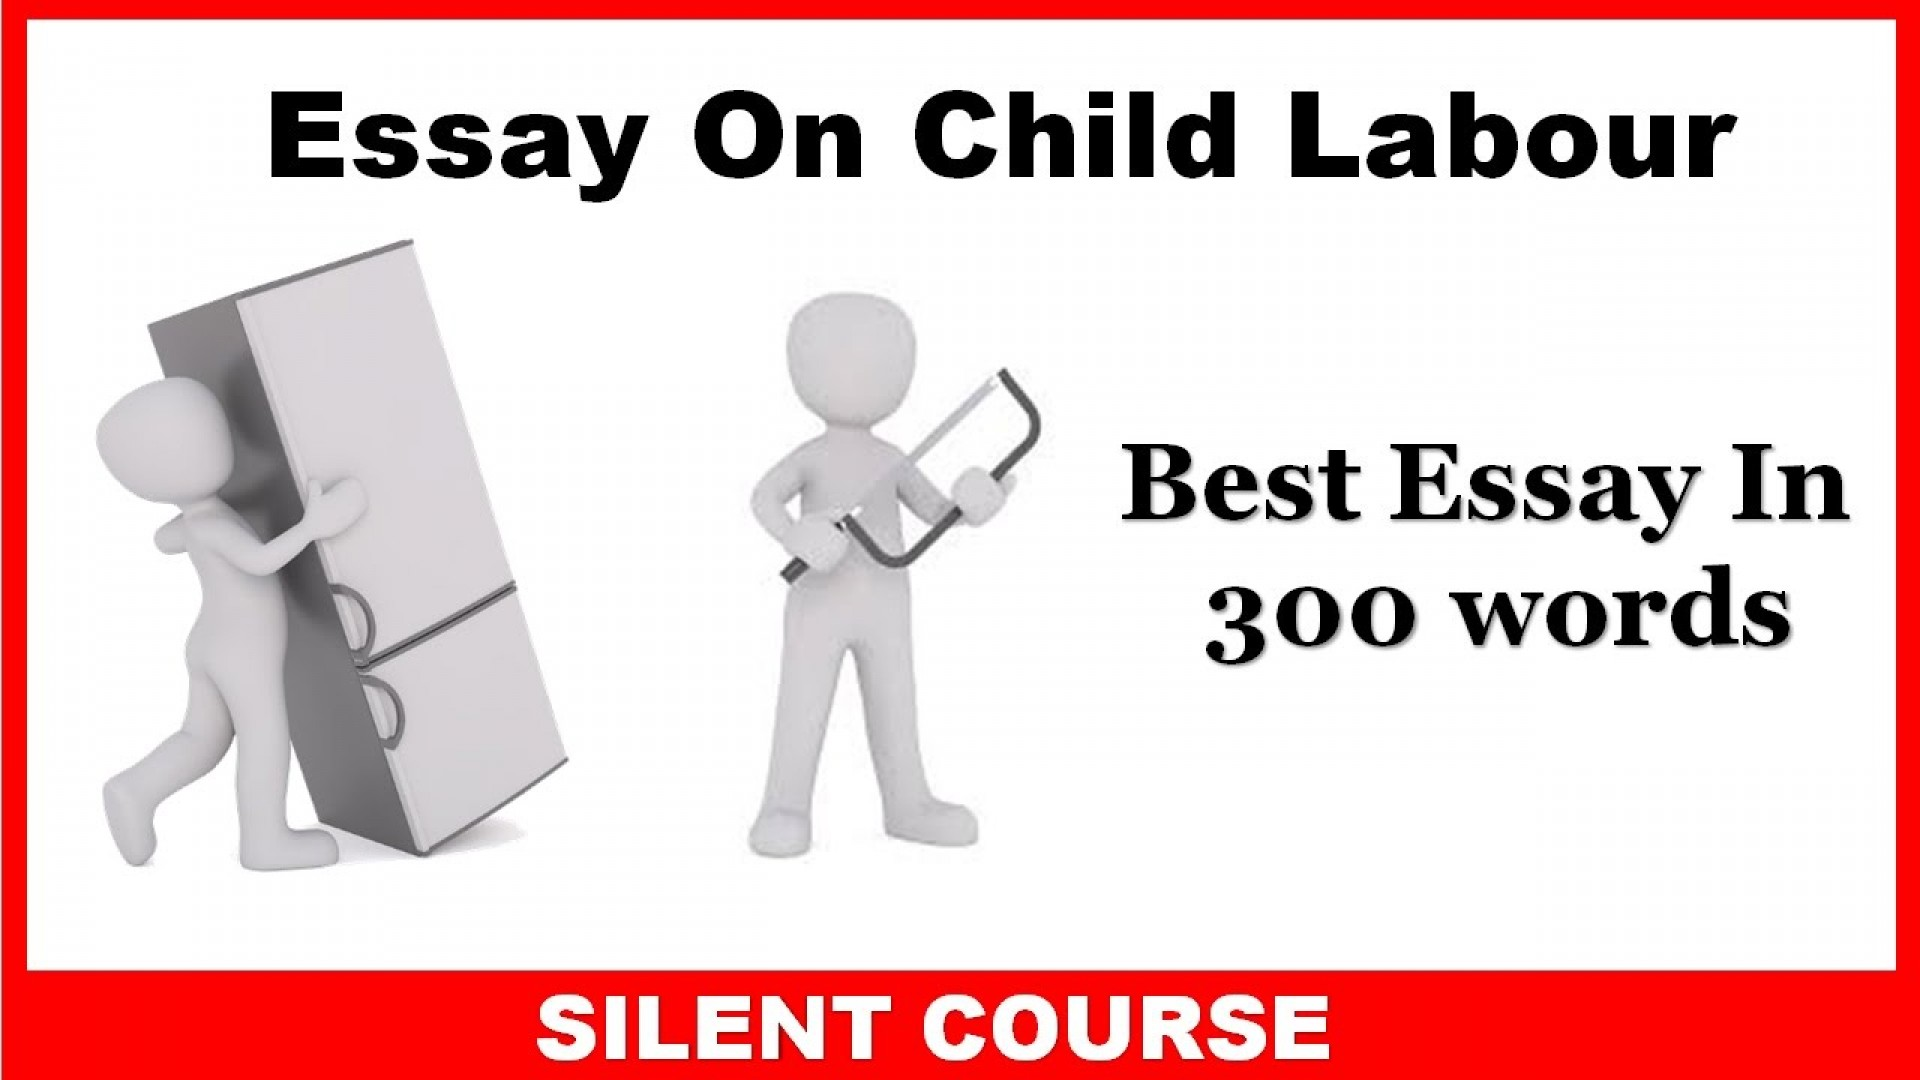 006 Essay Example Child Labour Best In Telugu Kannada Short Pdf 1920